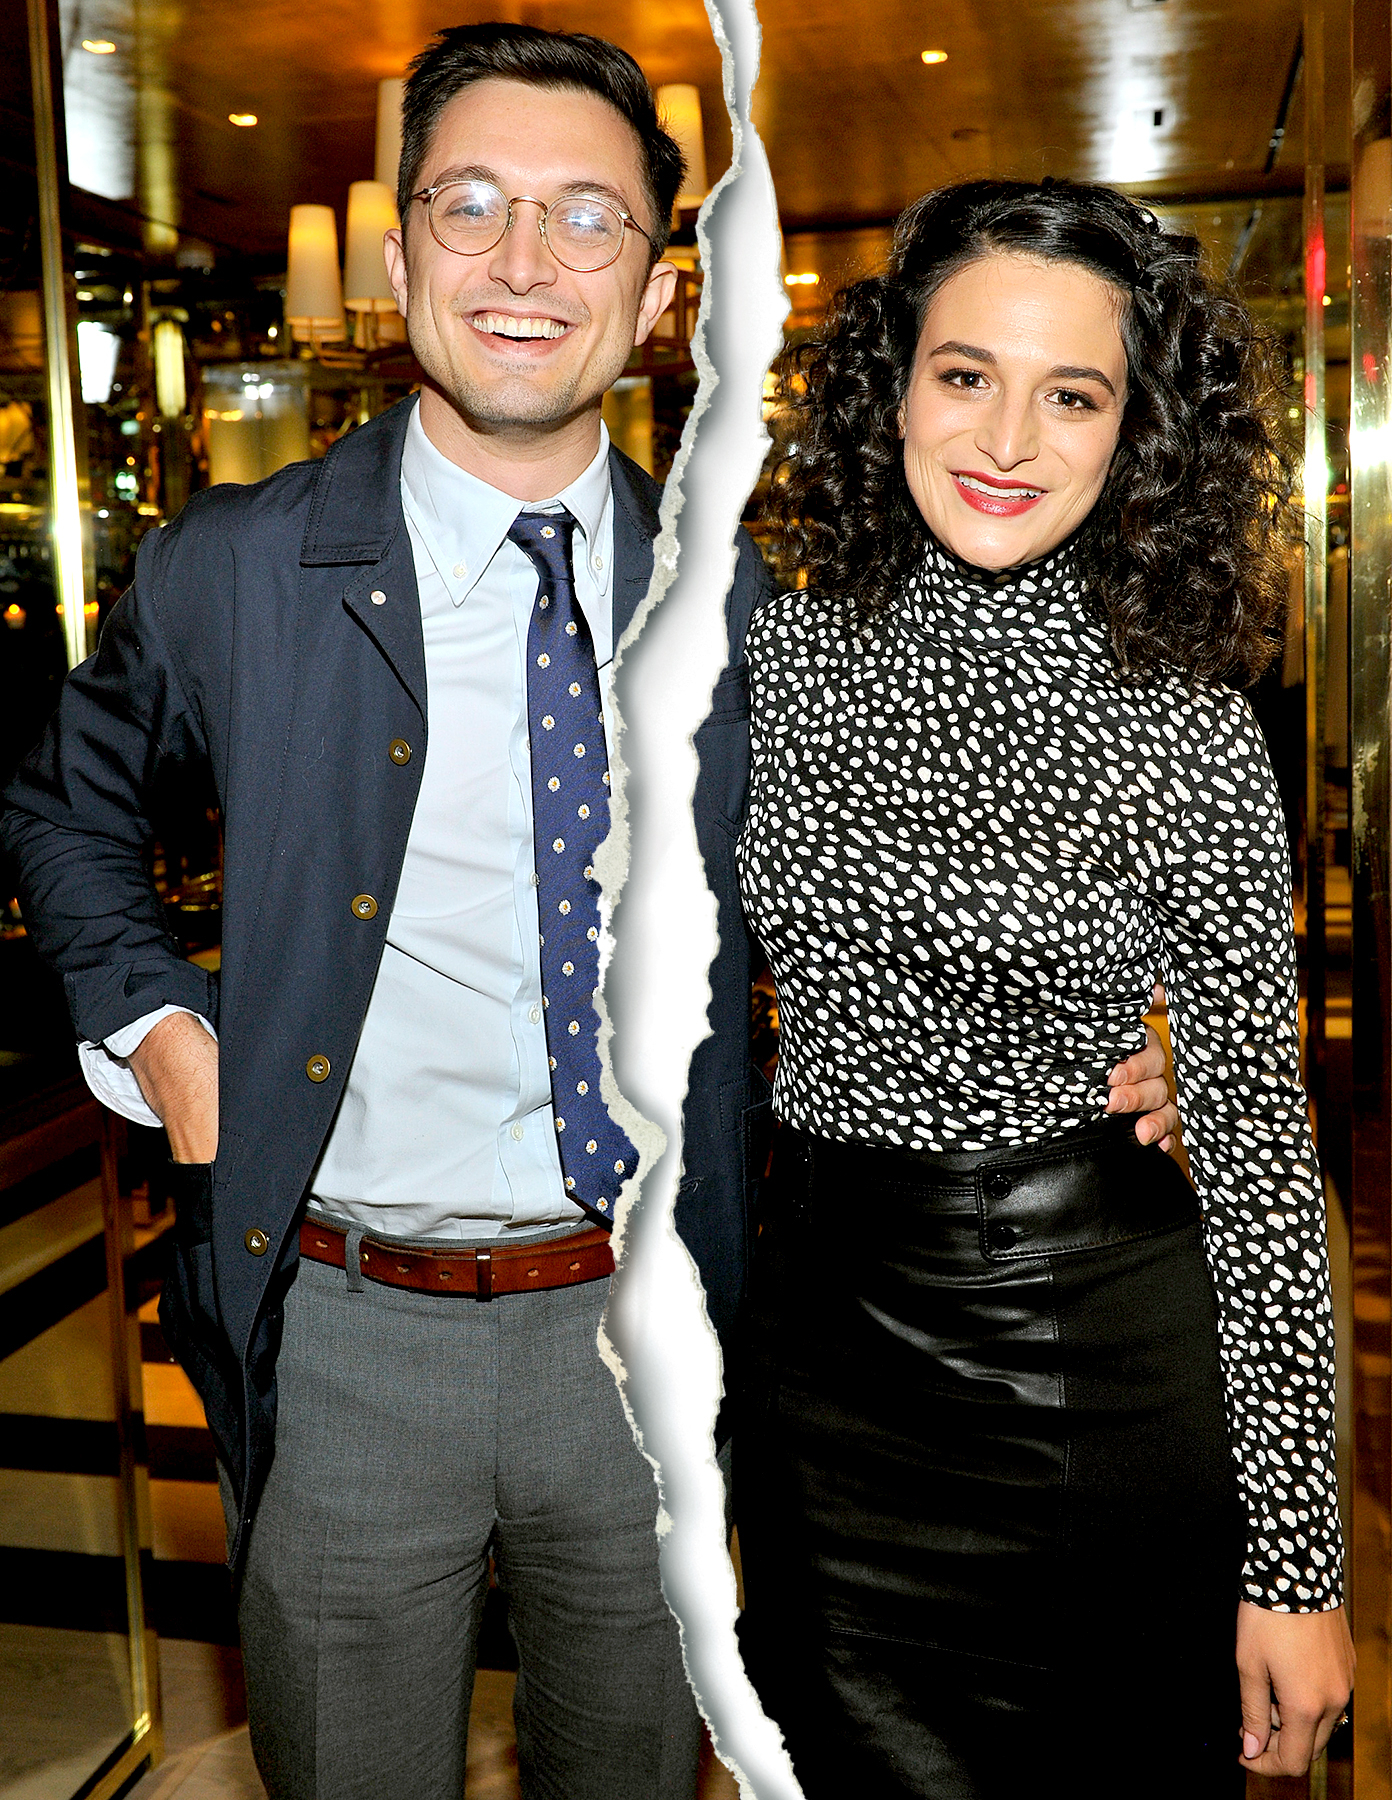 Dean Fleischer-Camp poses with Jenny Slate at the dinner hosted by Krista Smith for Jenny Slate at the Tory Burch Rodeo Flagship on November 17, 2014 in Beverly Hills, California.